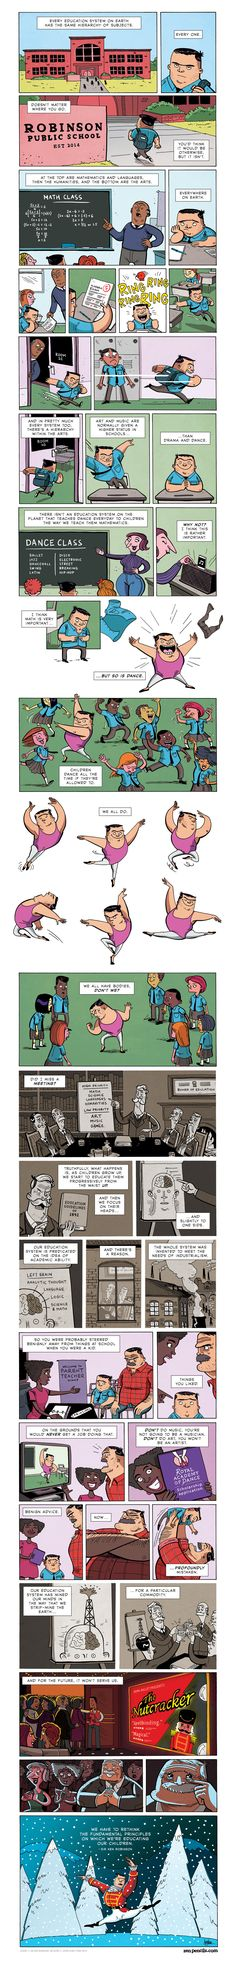 Sir Ken Robinson: Full Body Education (Zen Pencils)